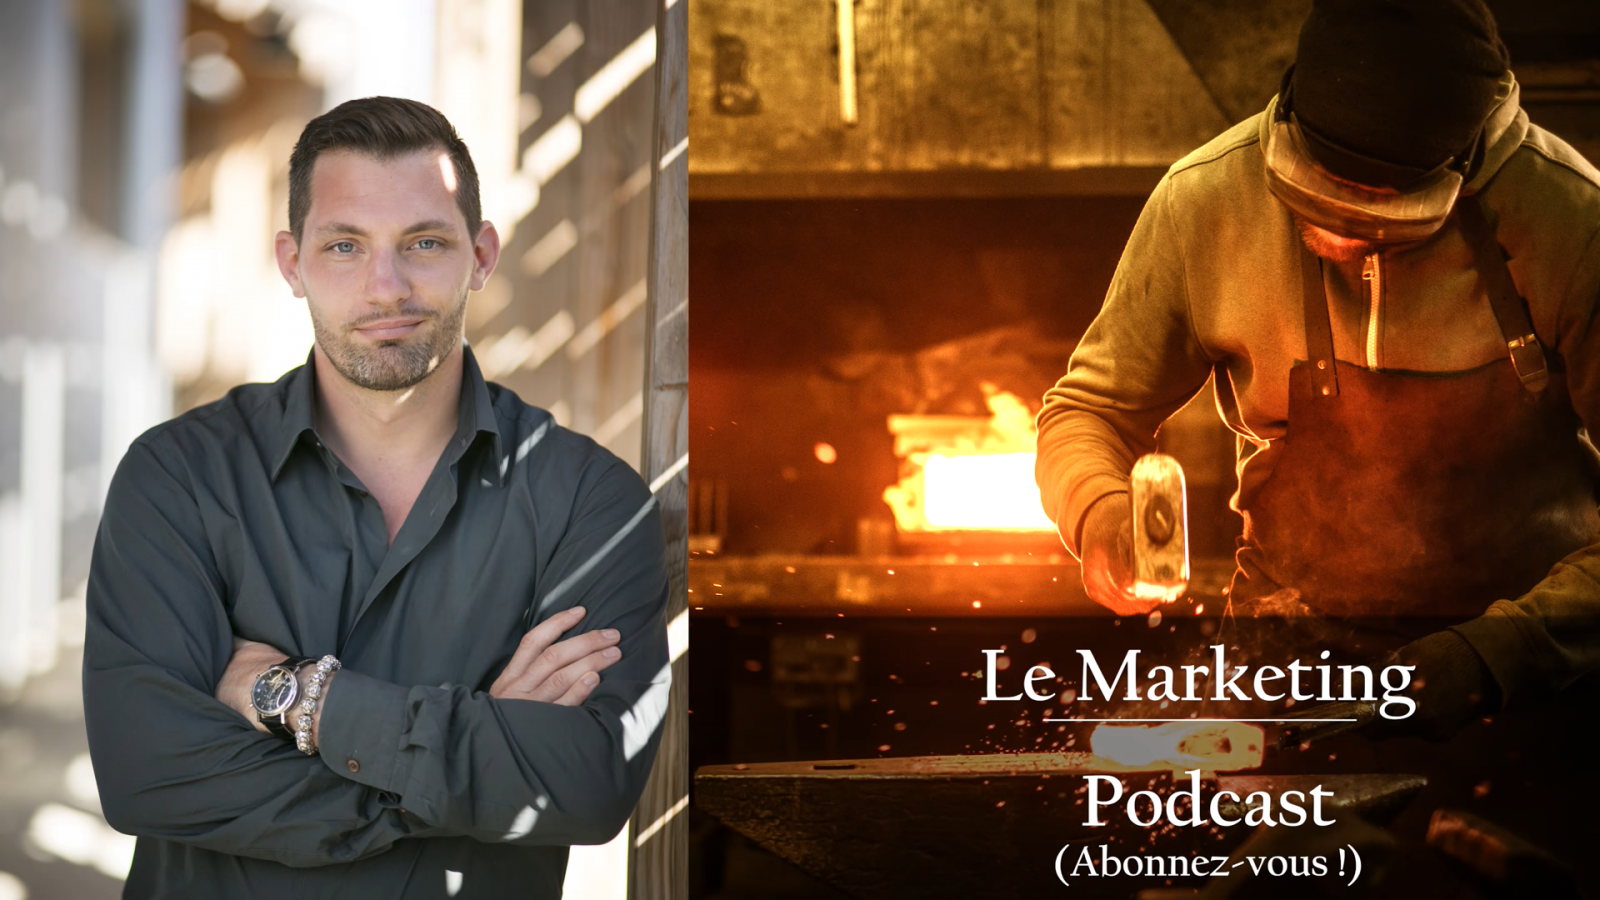 7eme podcast : Le marketing, bon ou mauvais ?